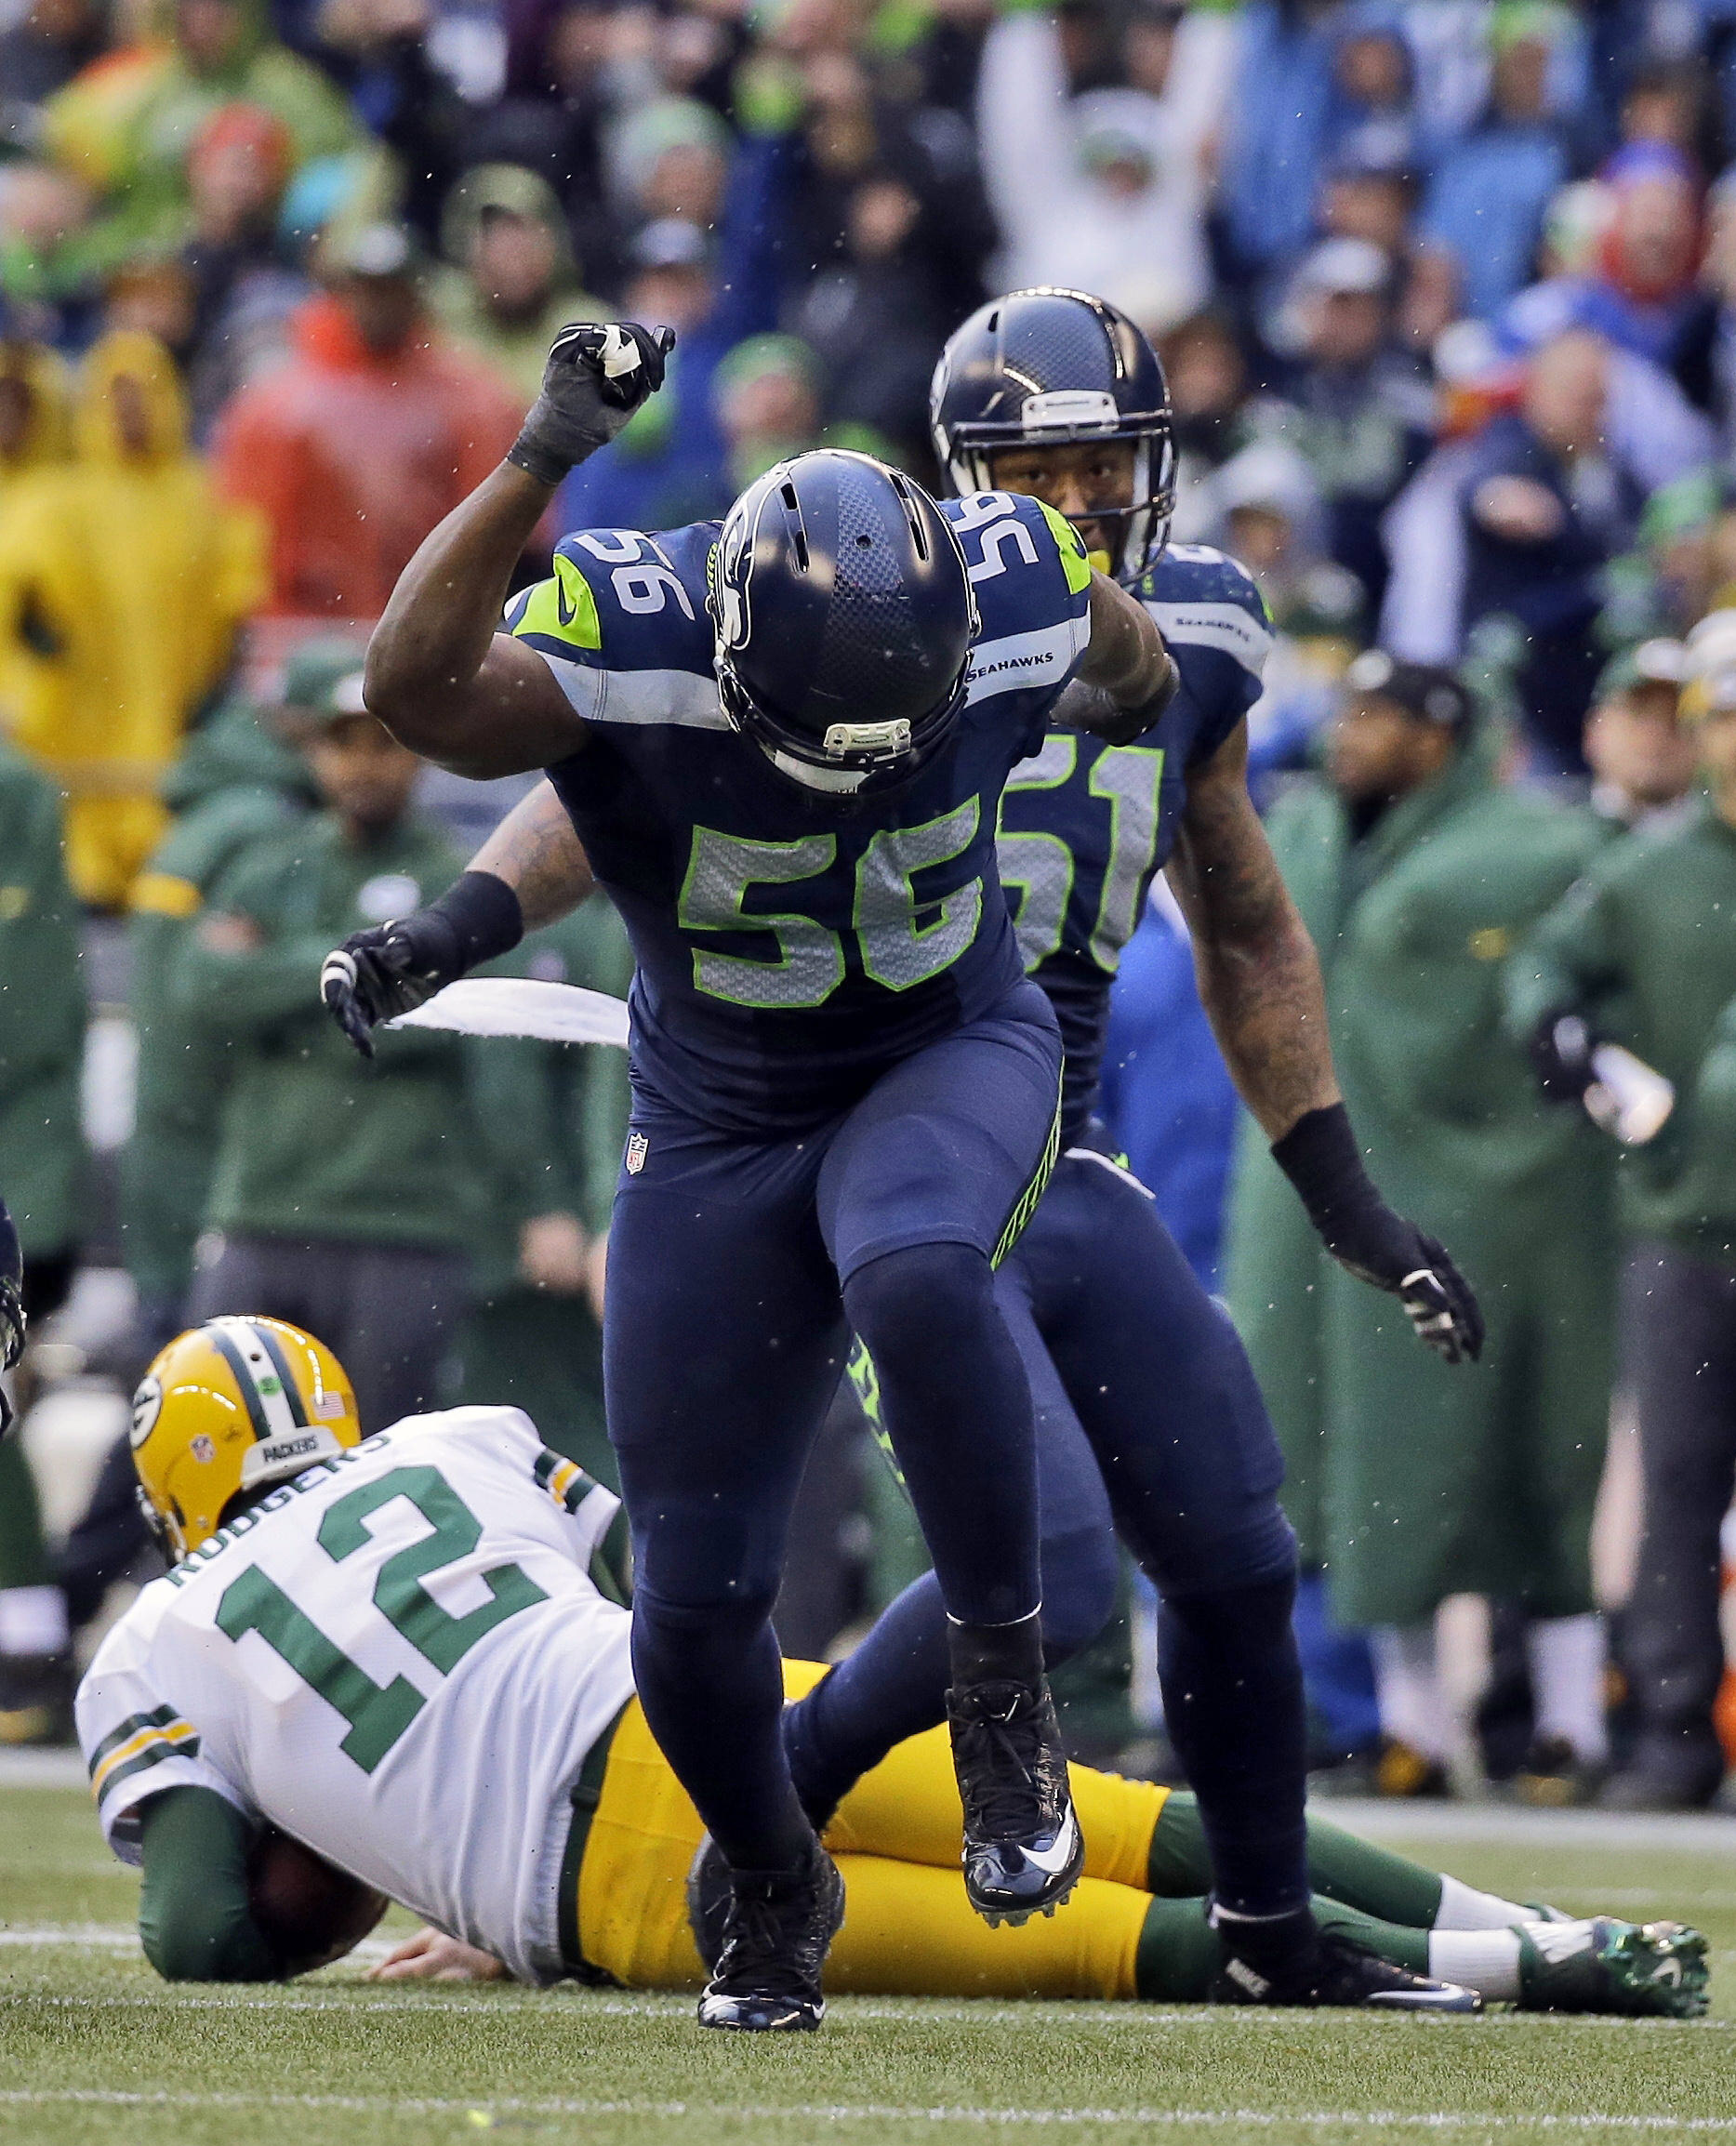 Seahawks defensive end Cliff Avril provides more than stats